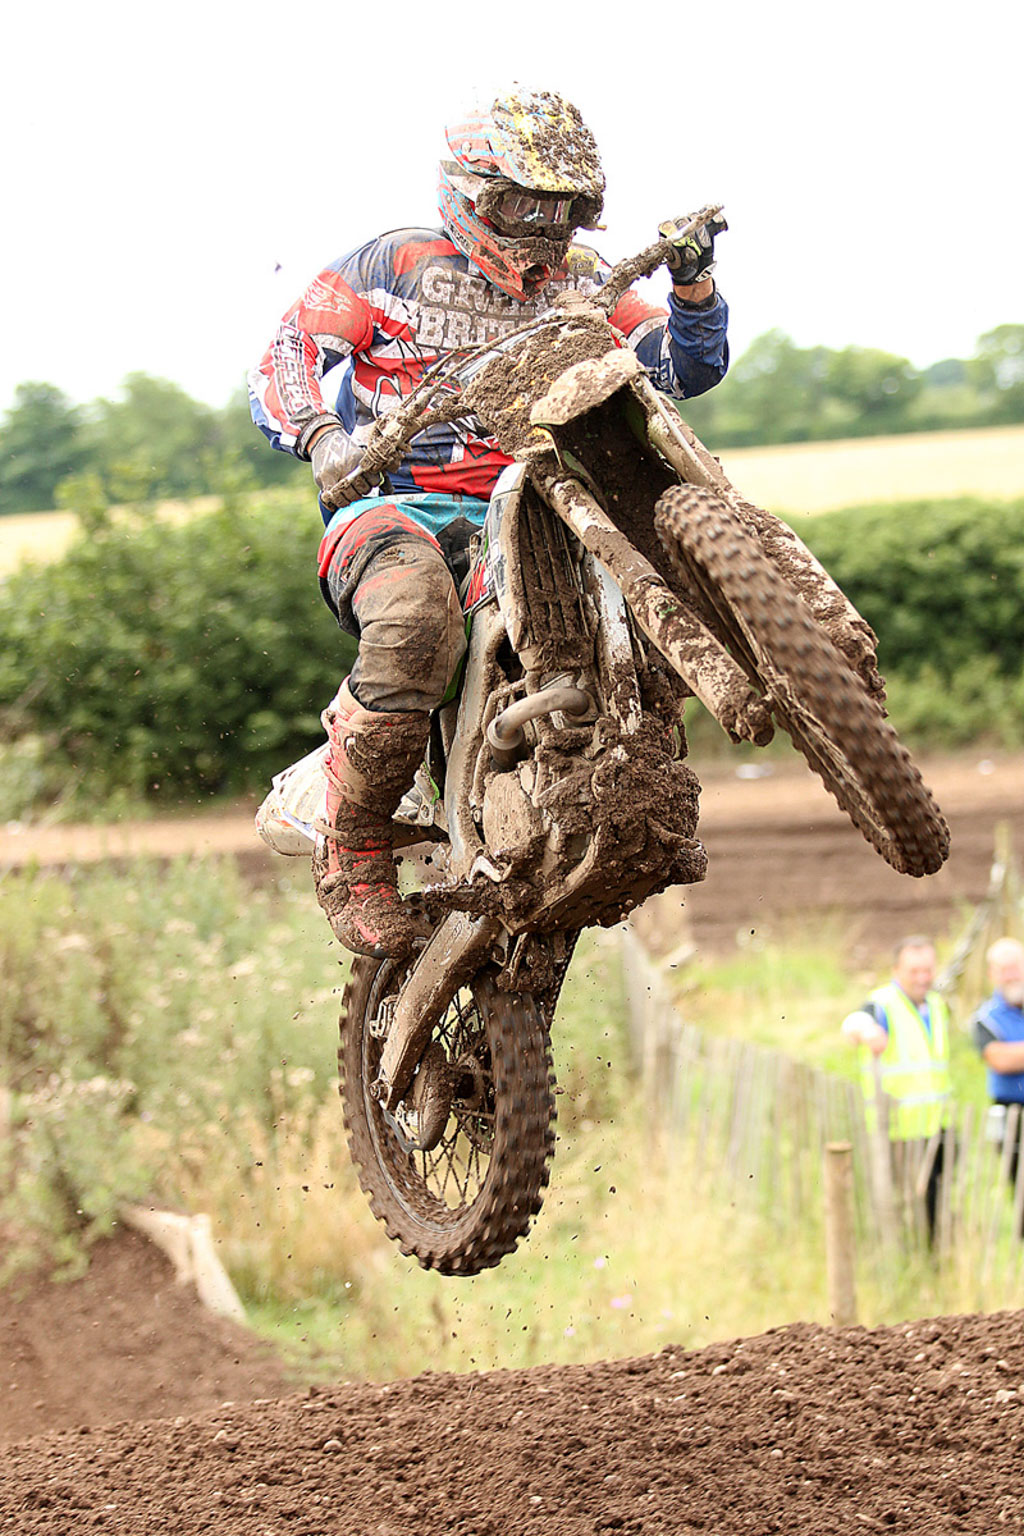 Clinton Barrs, 10th in MX2